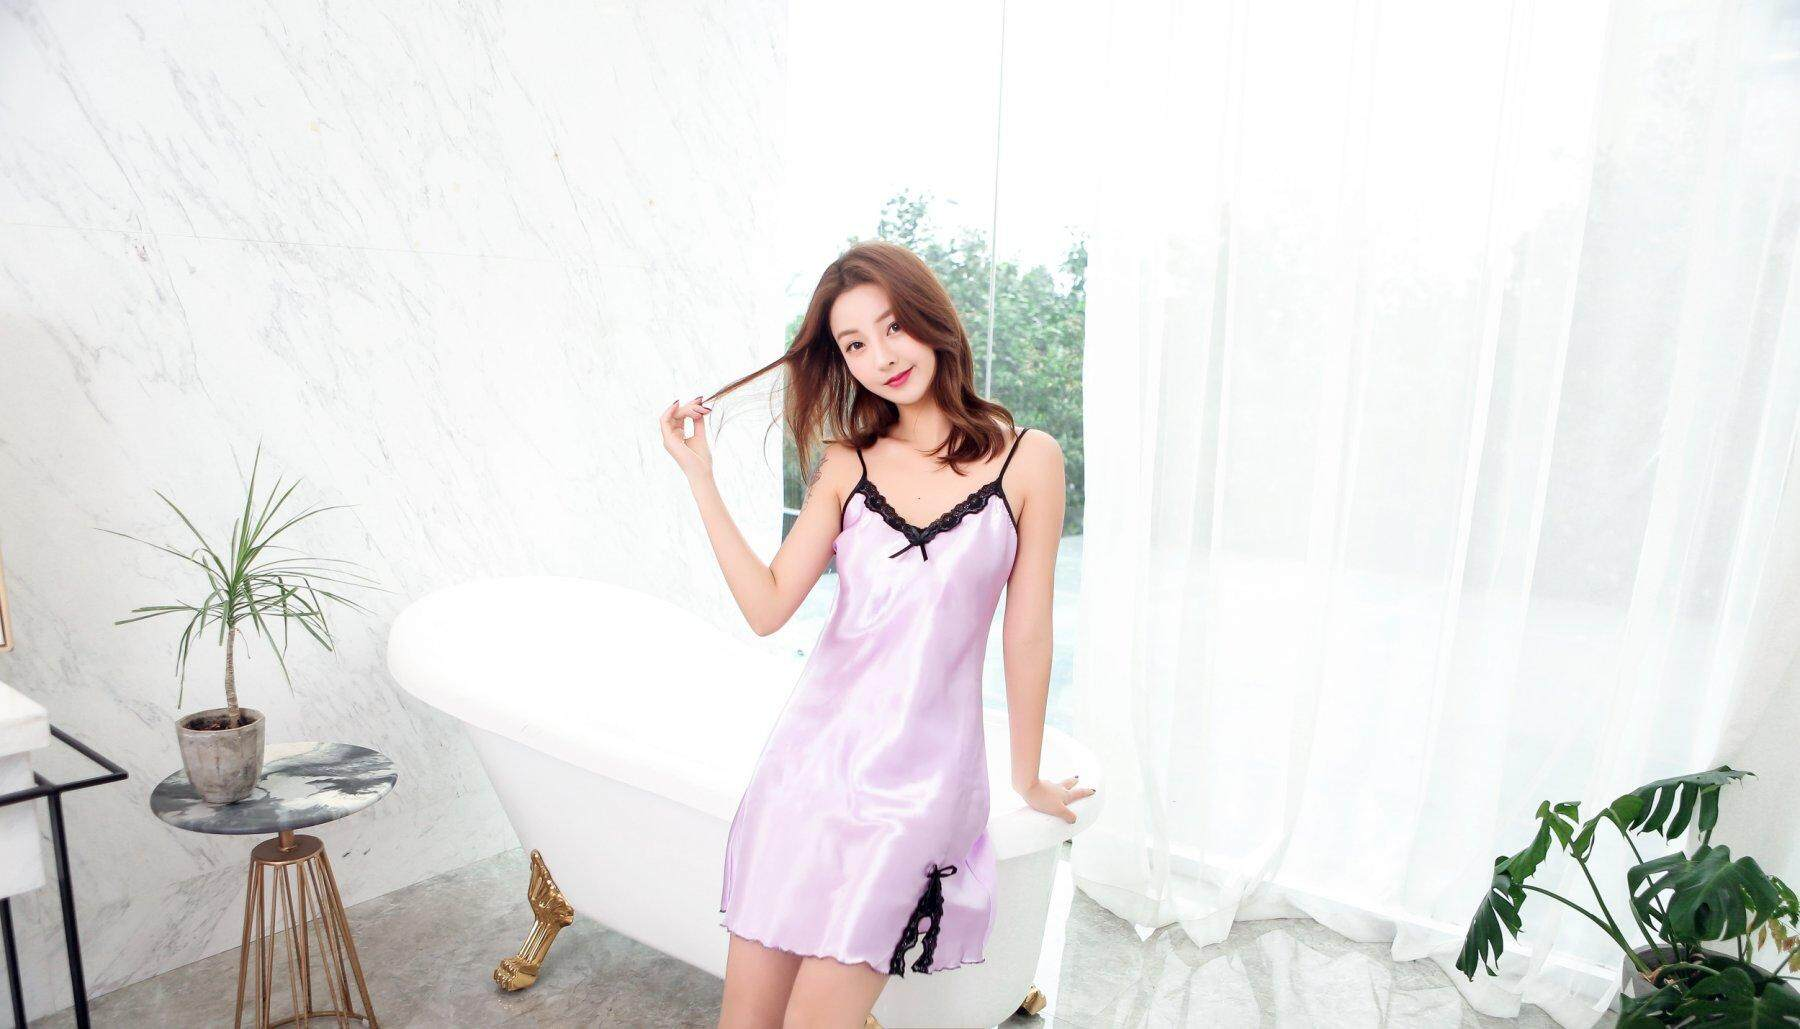 【LIMITED & READY 4 YOU】Superb Women Sexy Short Dress Pyjamas With Premium Grade Quality Silk(Blue/Red/Black/Pink/Lavender Purple/Wine Red - Free Size)